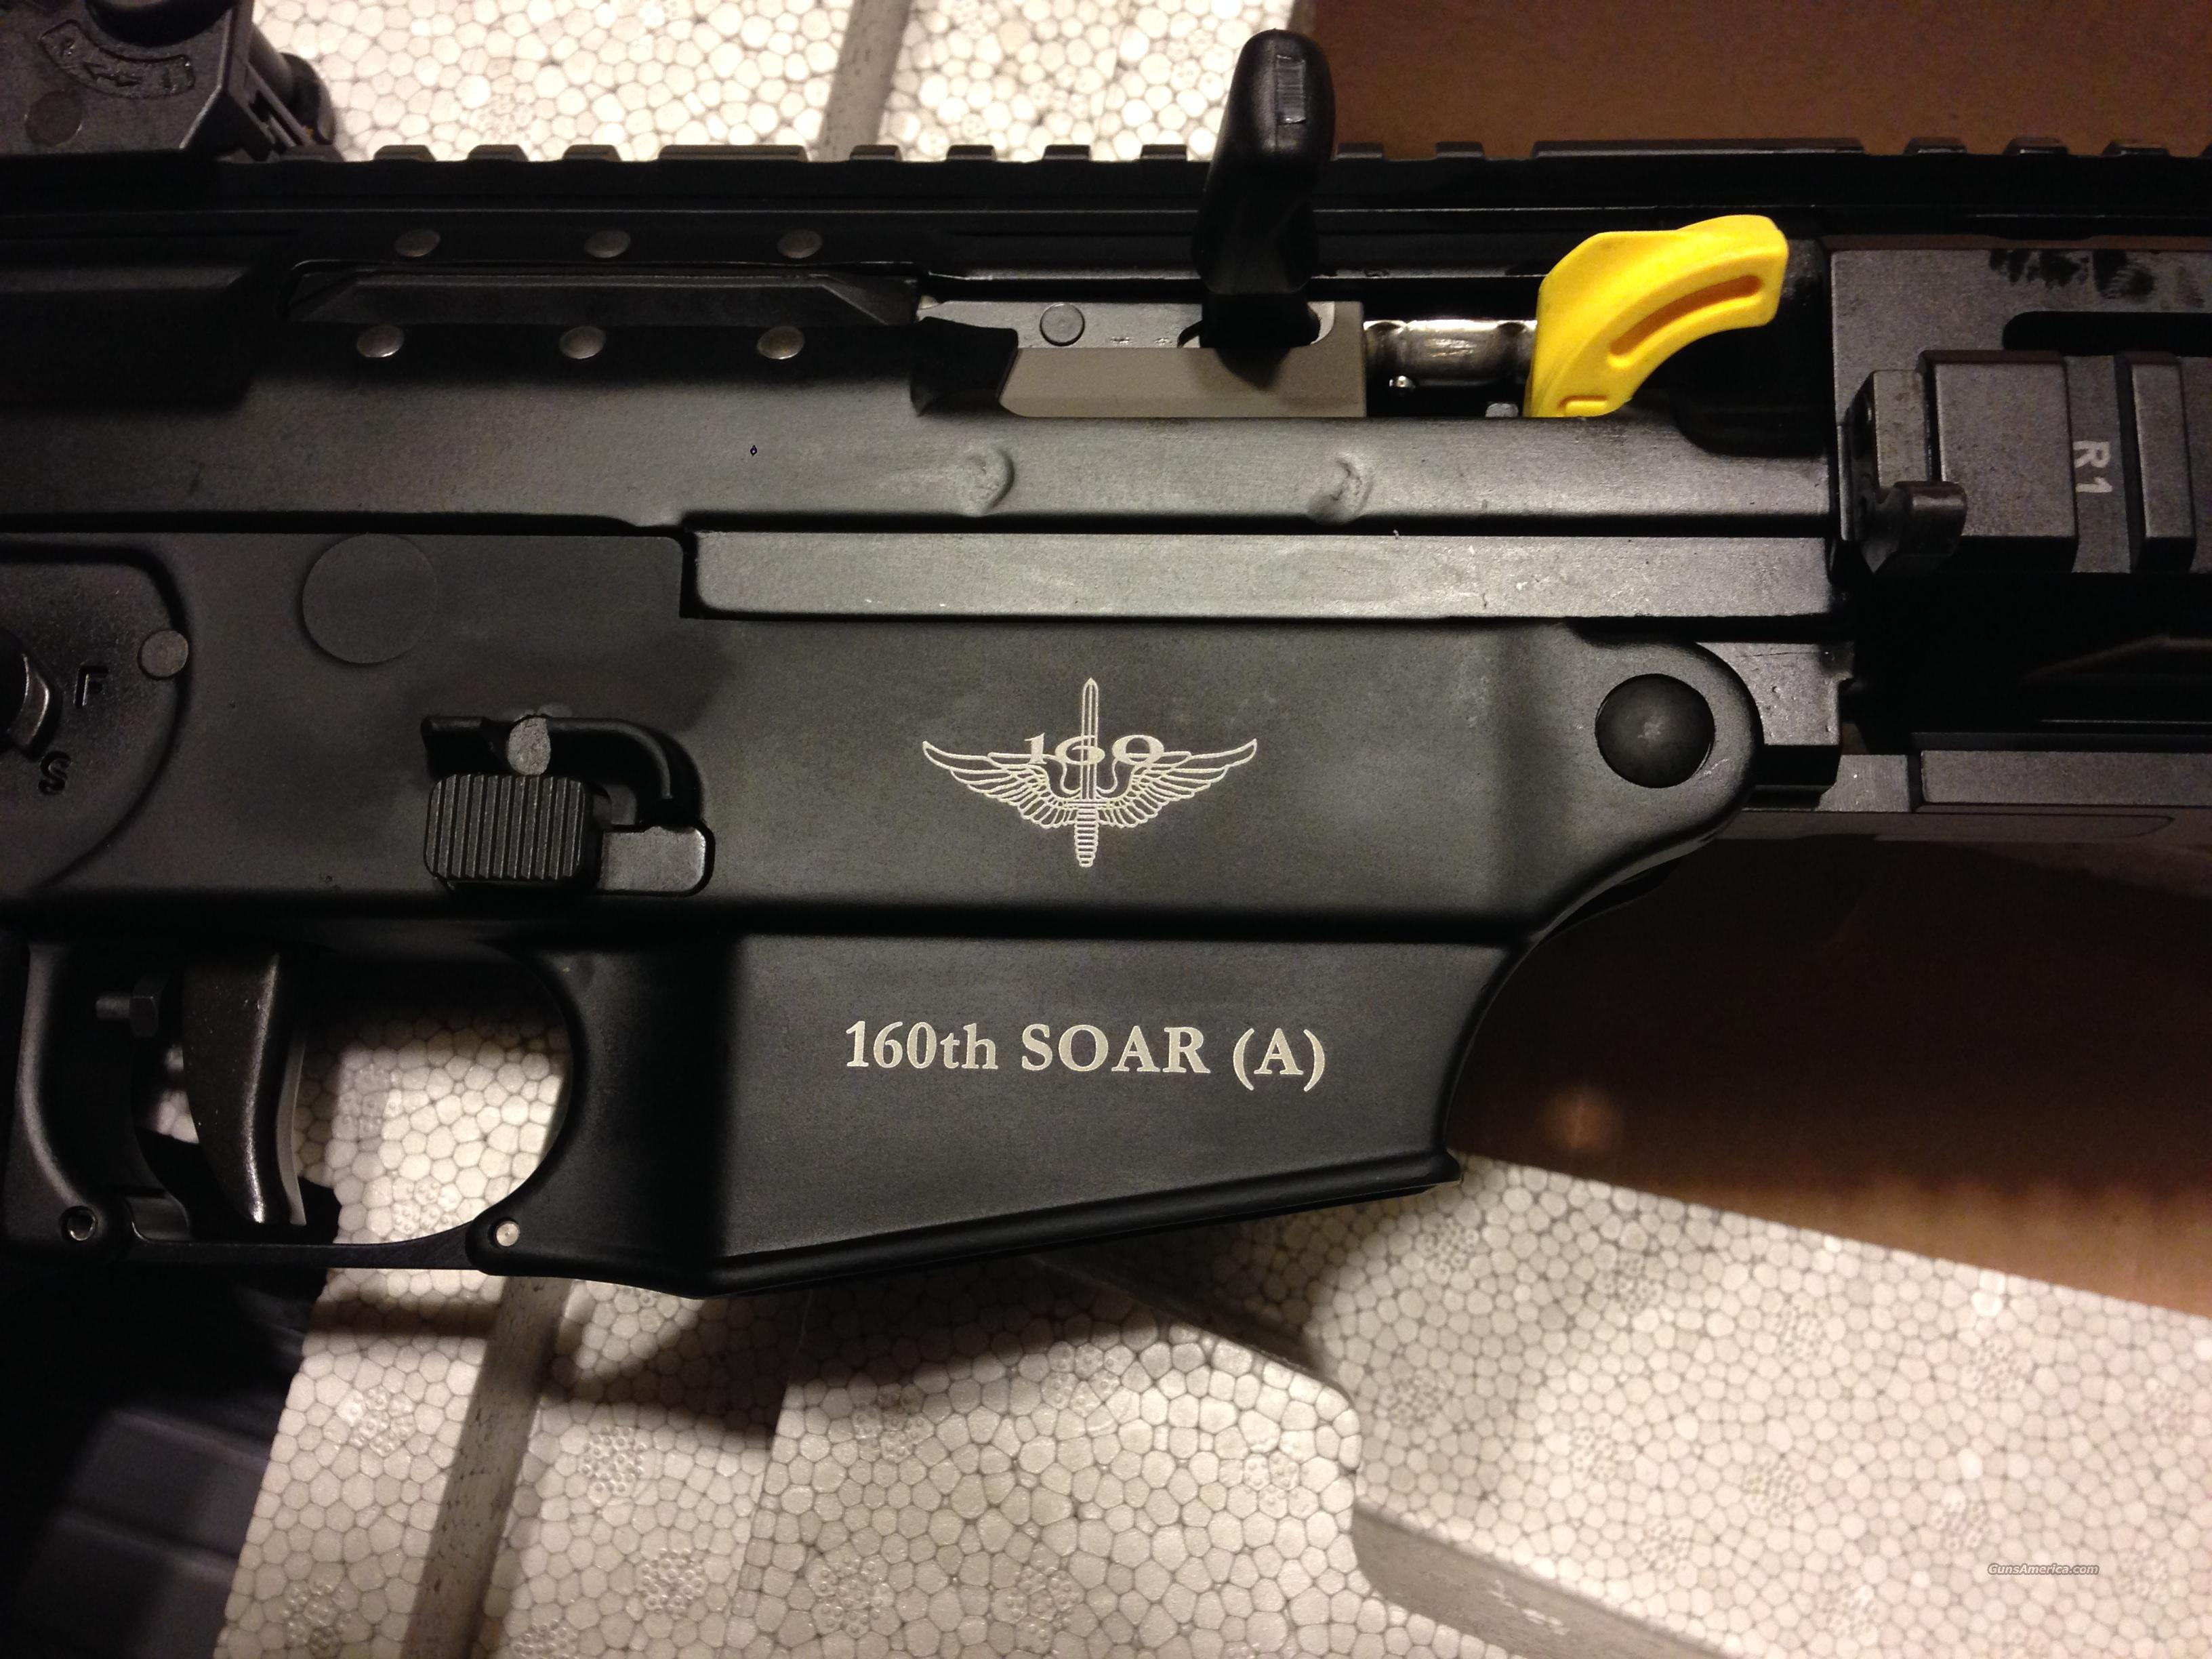 Sig Sauer Night Stalker 556 SWAT 160th SOAR (A) Commemorative  Guns > Rifles > Sig - Sauer/Sigarms Rifles